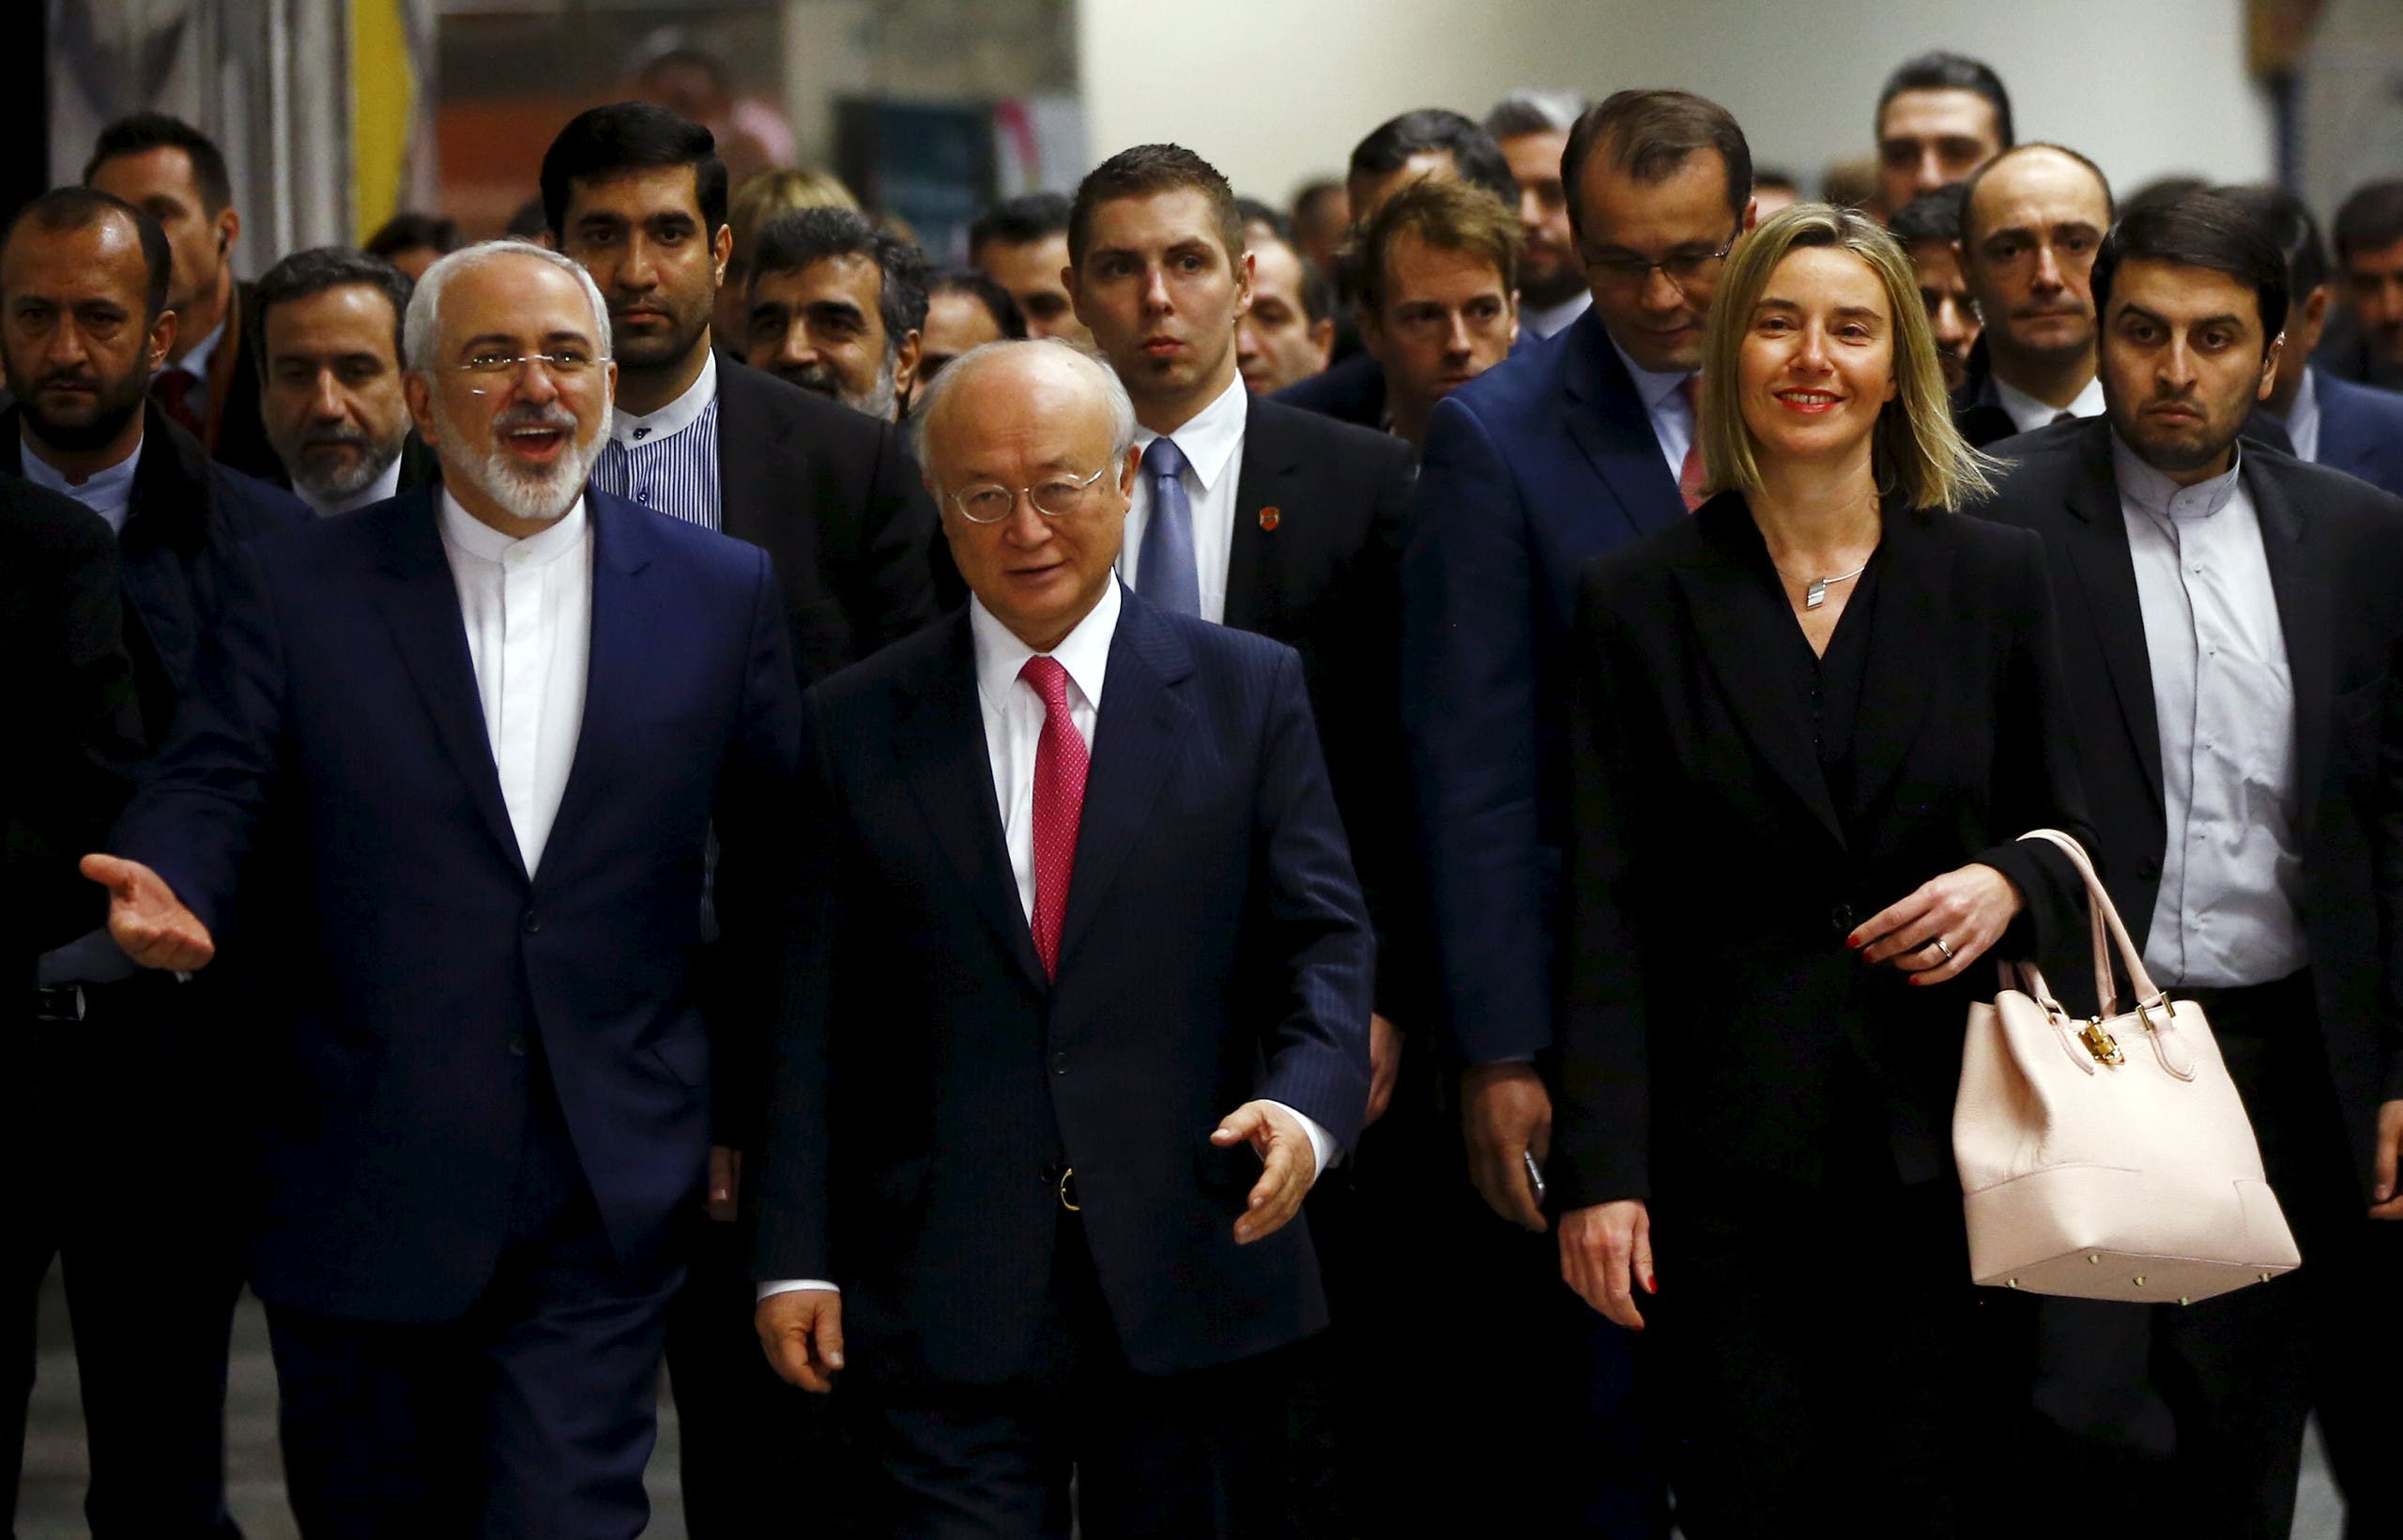 ranian Foreign Minister Javad Zarif, International Atomic Energy Agency (IAEA) Director General Yukiya Amano and the High Representative of the European Union for Foreign Affairs and Security Policy Federica Mogherini (front L-R) arrive at the United Nations building in Vienna, Austria, January 16, 2016. REUTERS